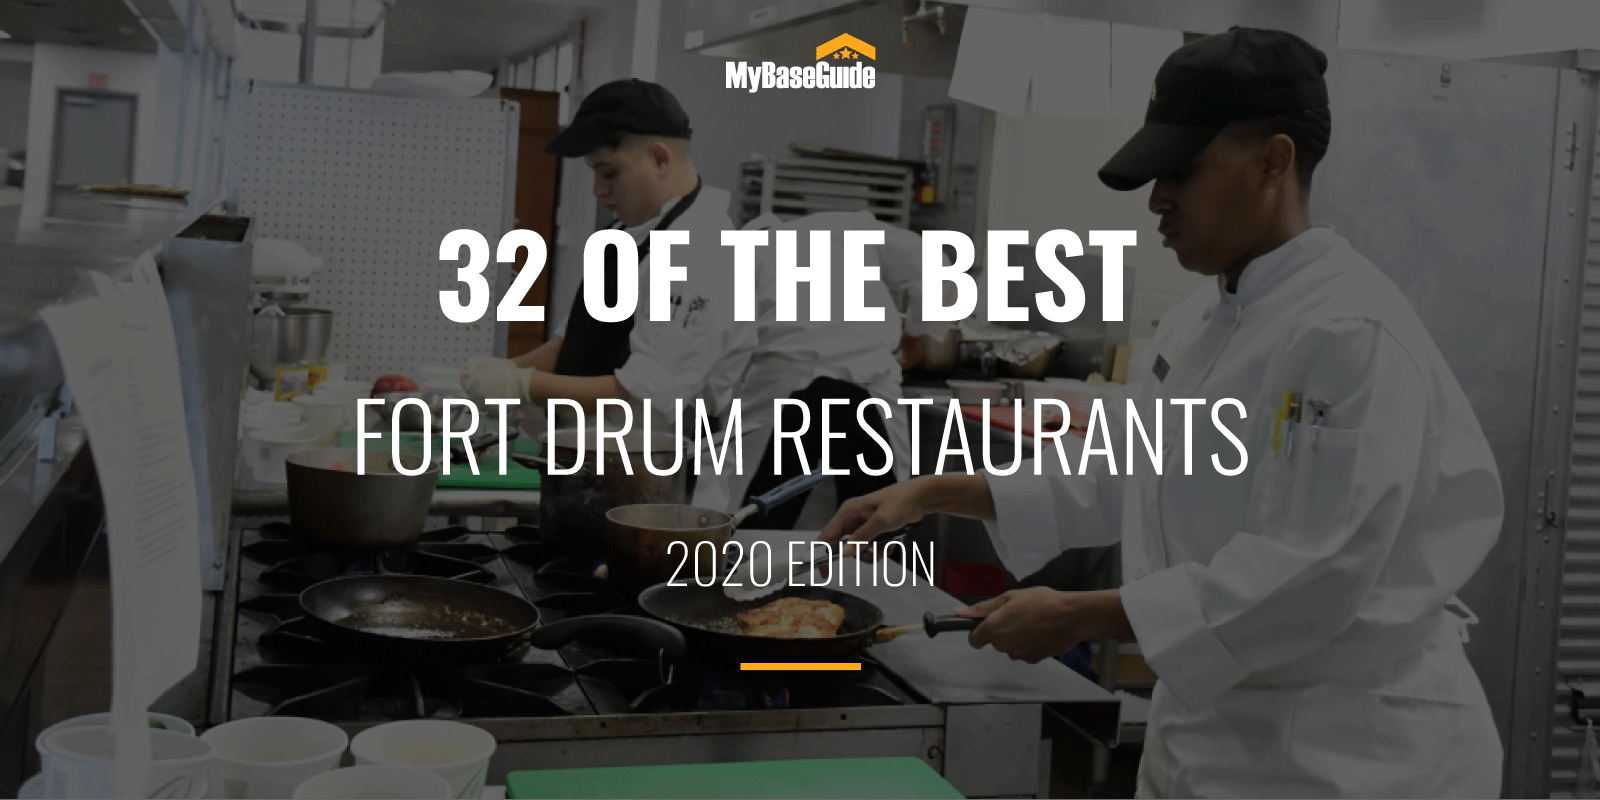 32 of the Best Fort Drum Restaurants